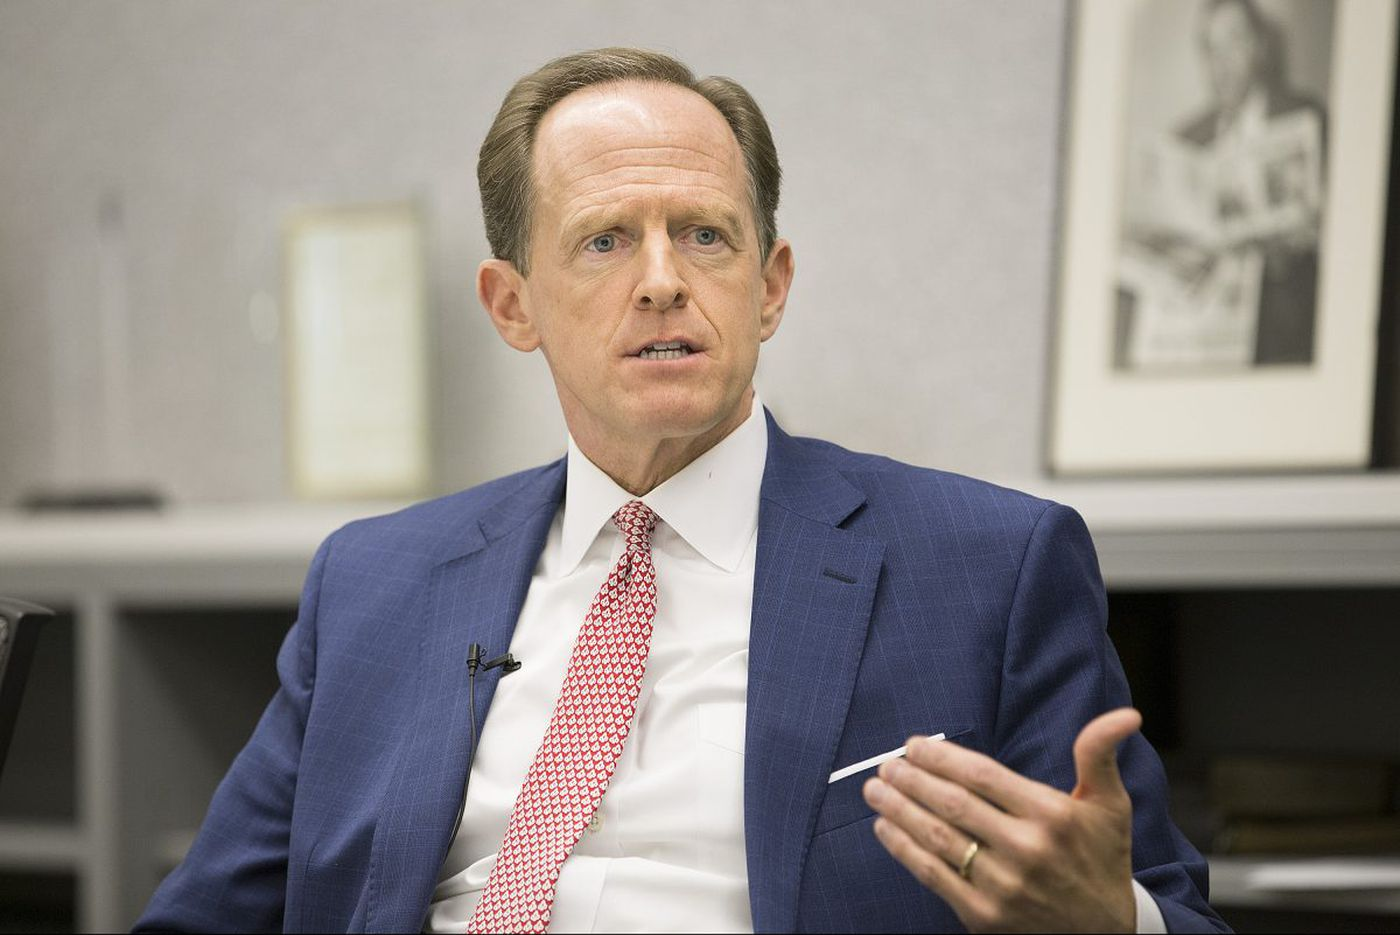 After Florida school shooting, Pat Toomey to press background check bill again